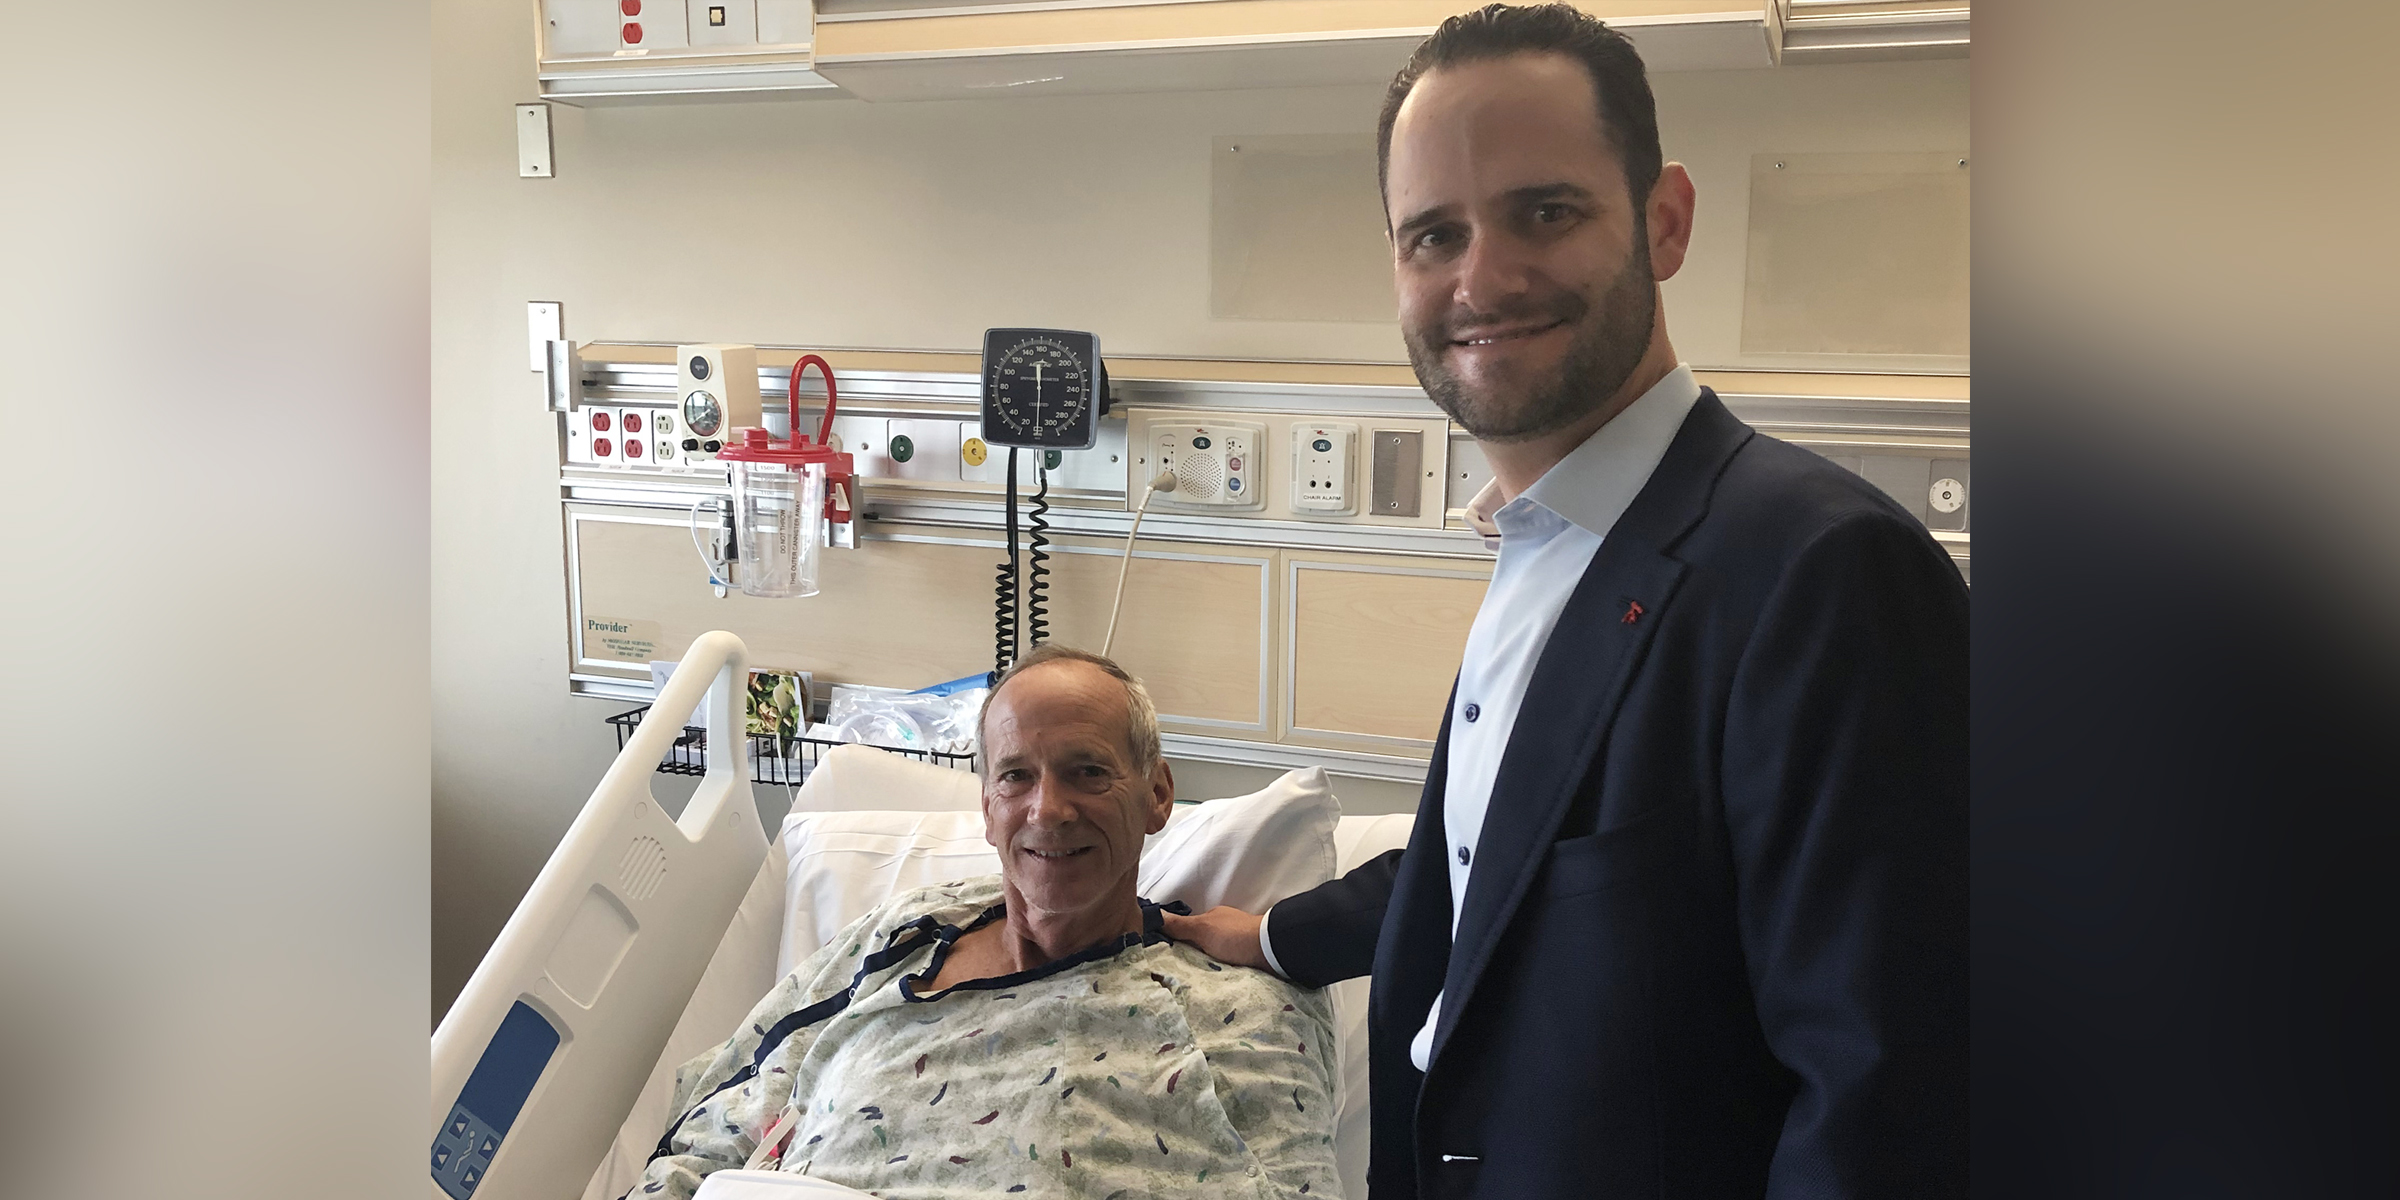 Customer service rep helps save caller having a stroke almost 900 miles away